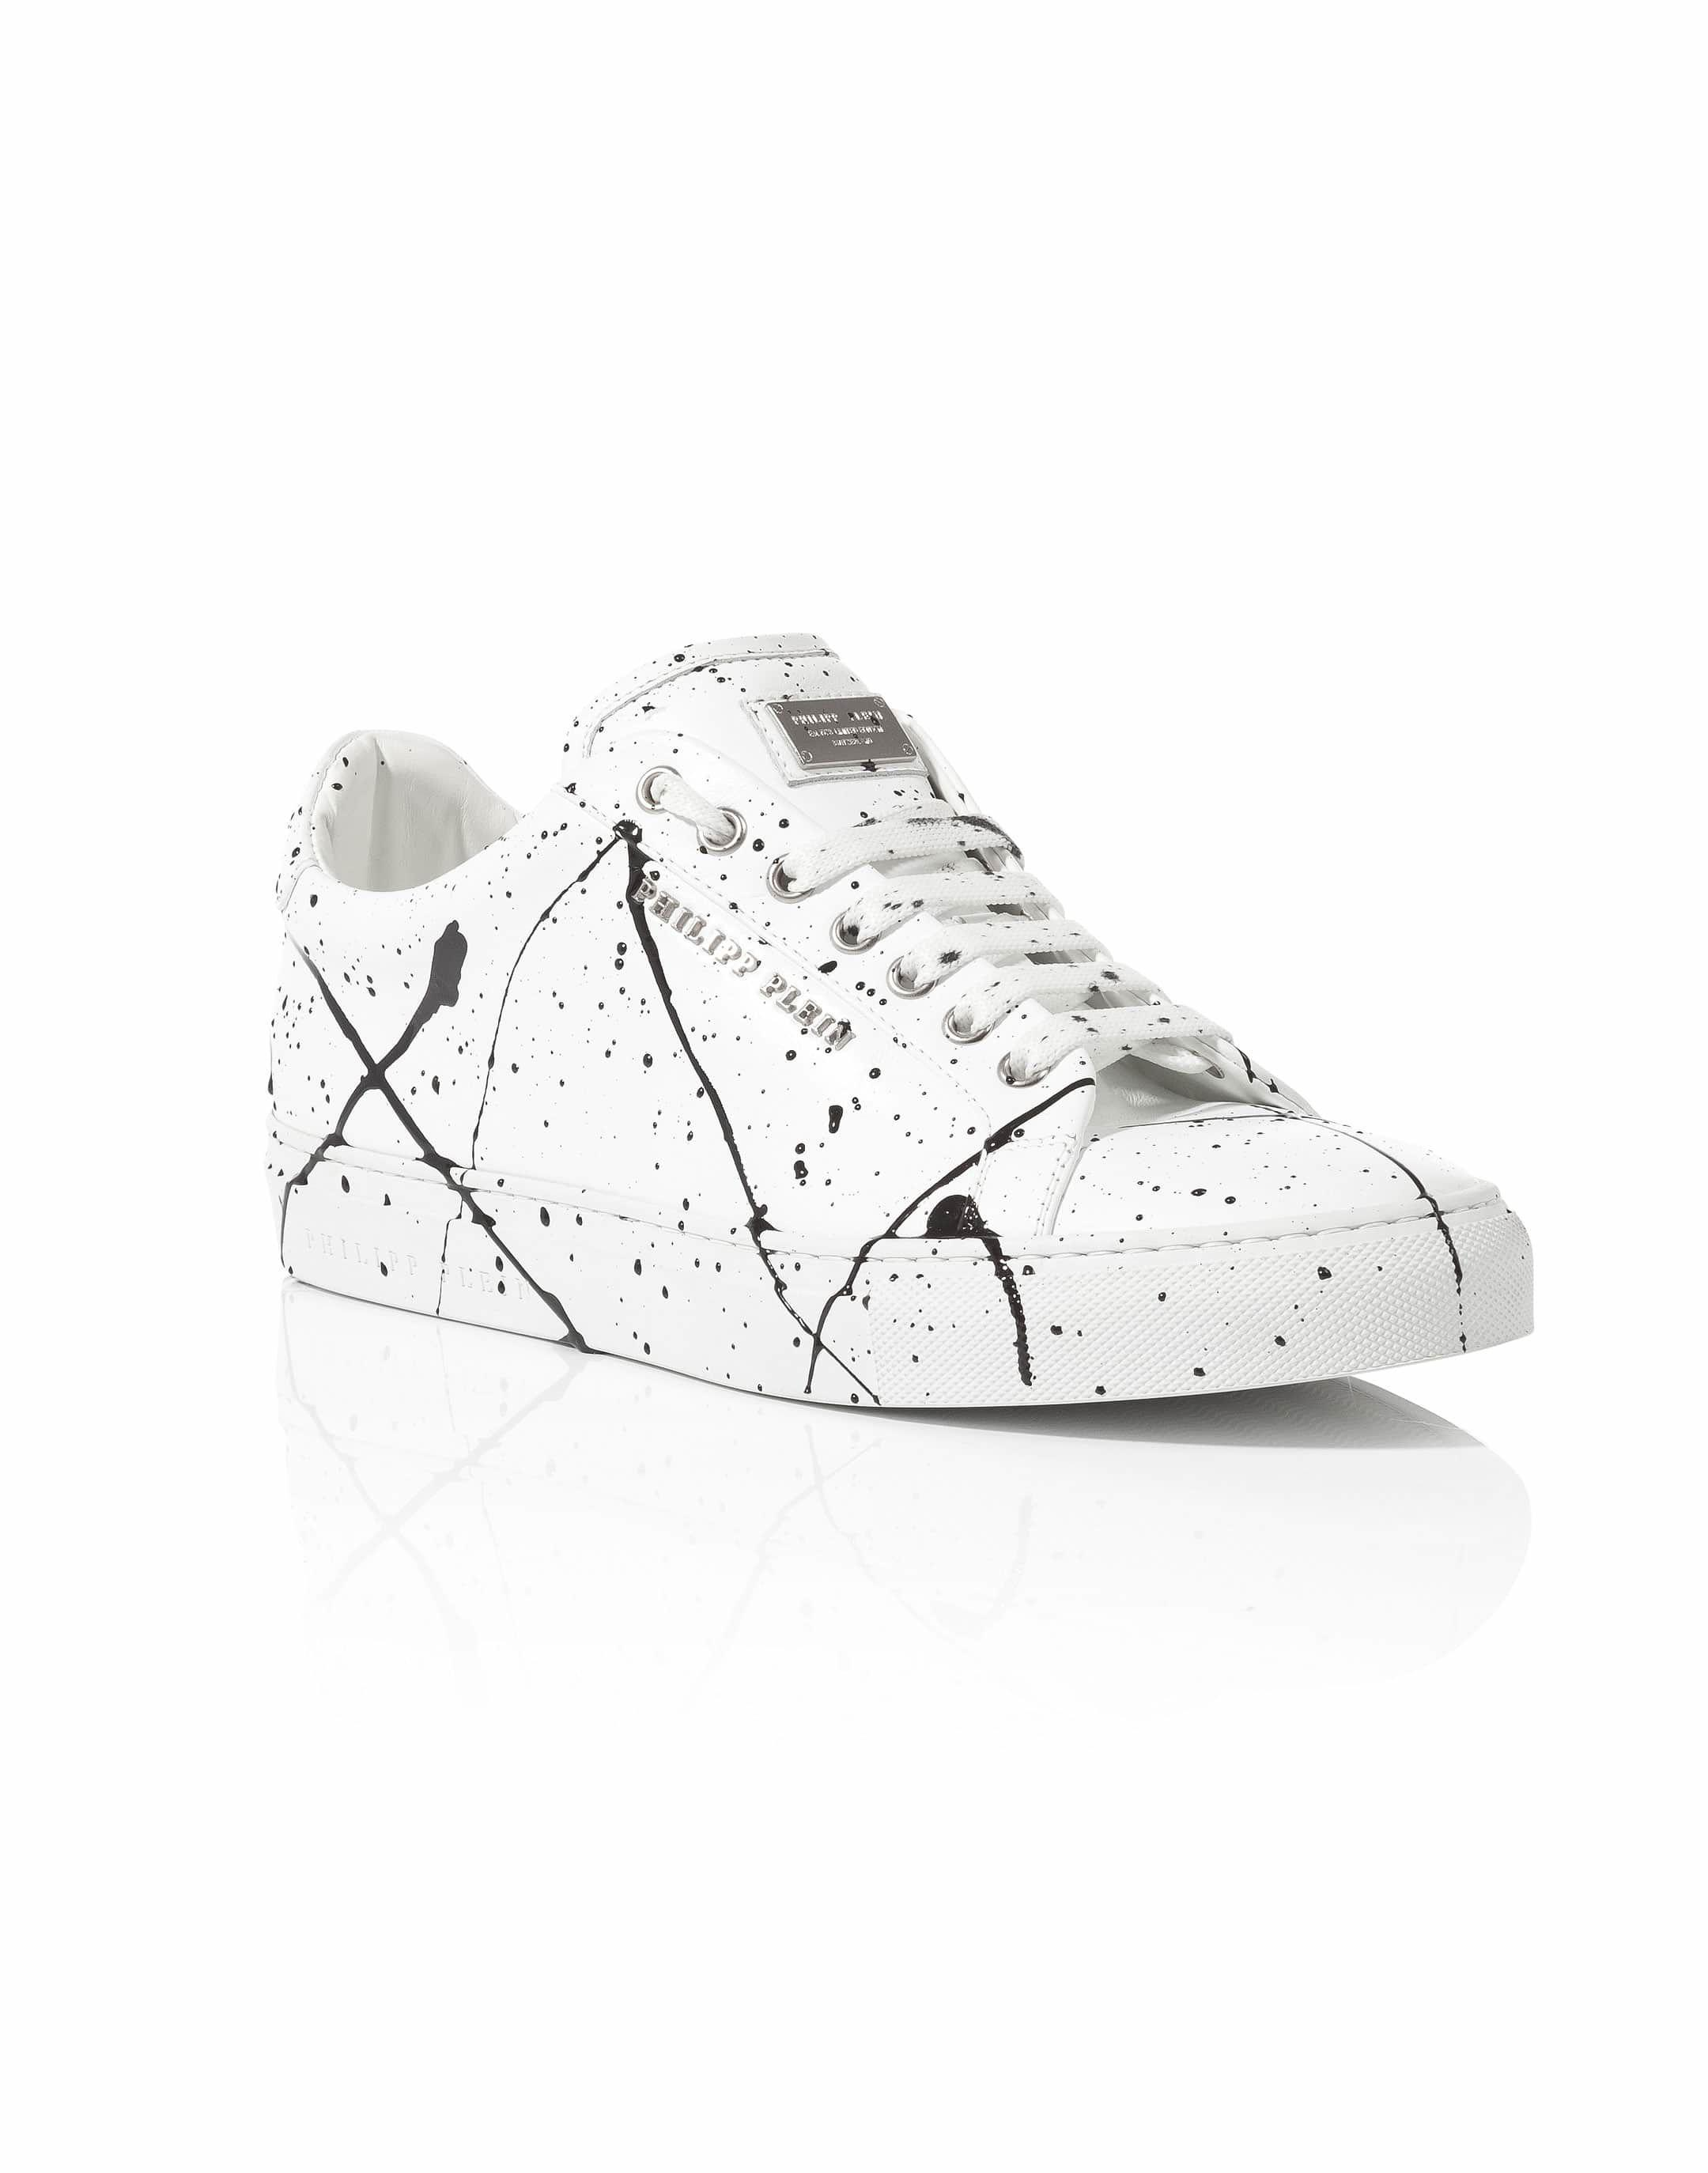 Philipp Plein Small Town sneakers discount latest buy cheap shopping online discount fake cheap big sale free shipping sast WqZiDb